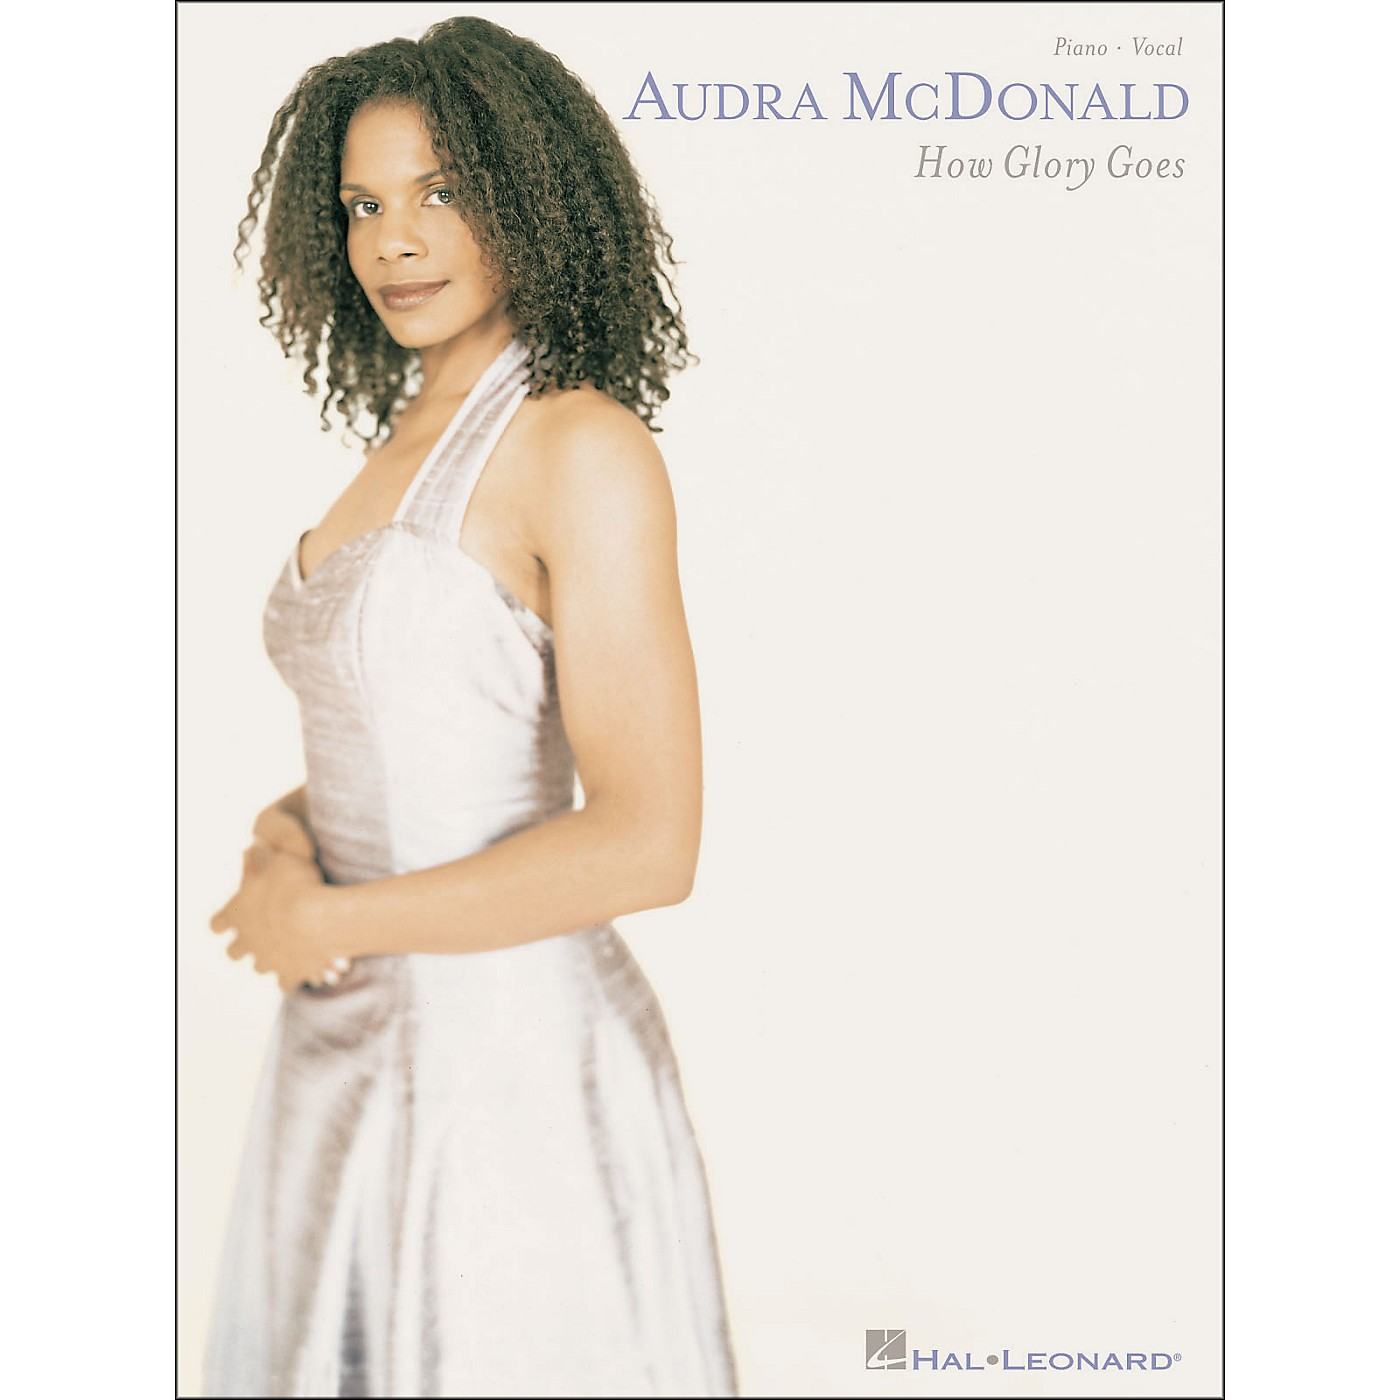 Hal Leonard Audra McDonald How Glory Goes Piano Vocal arranged for piano, vocal, and guitar (P/V/G) thumbnail